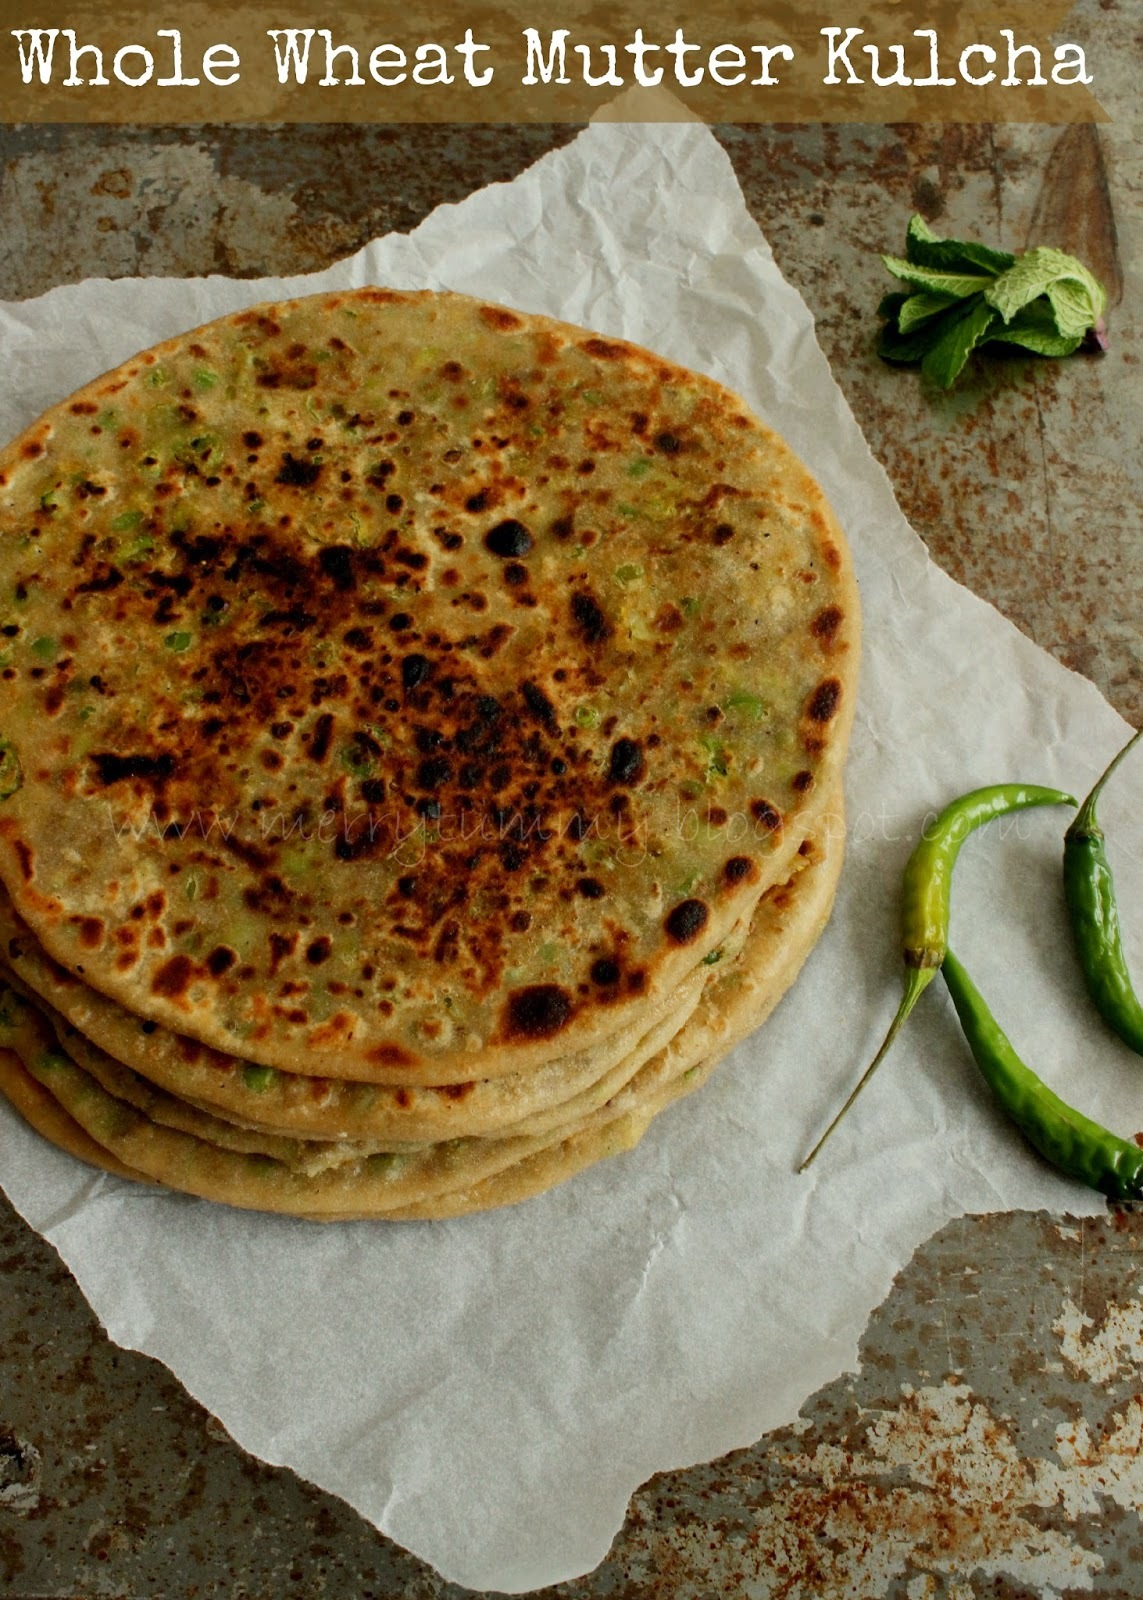 Whole Wheat Mutter Kulcha